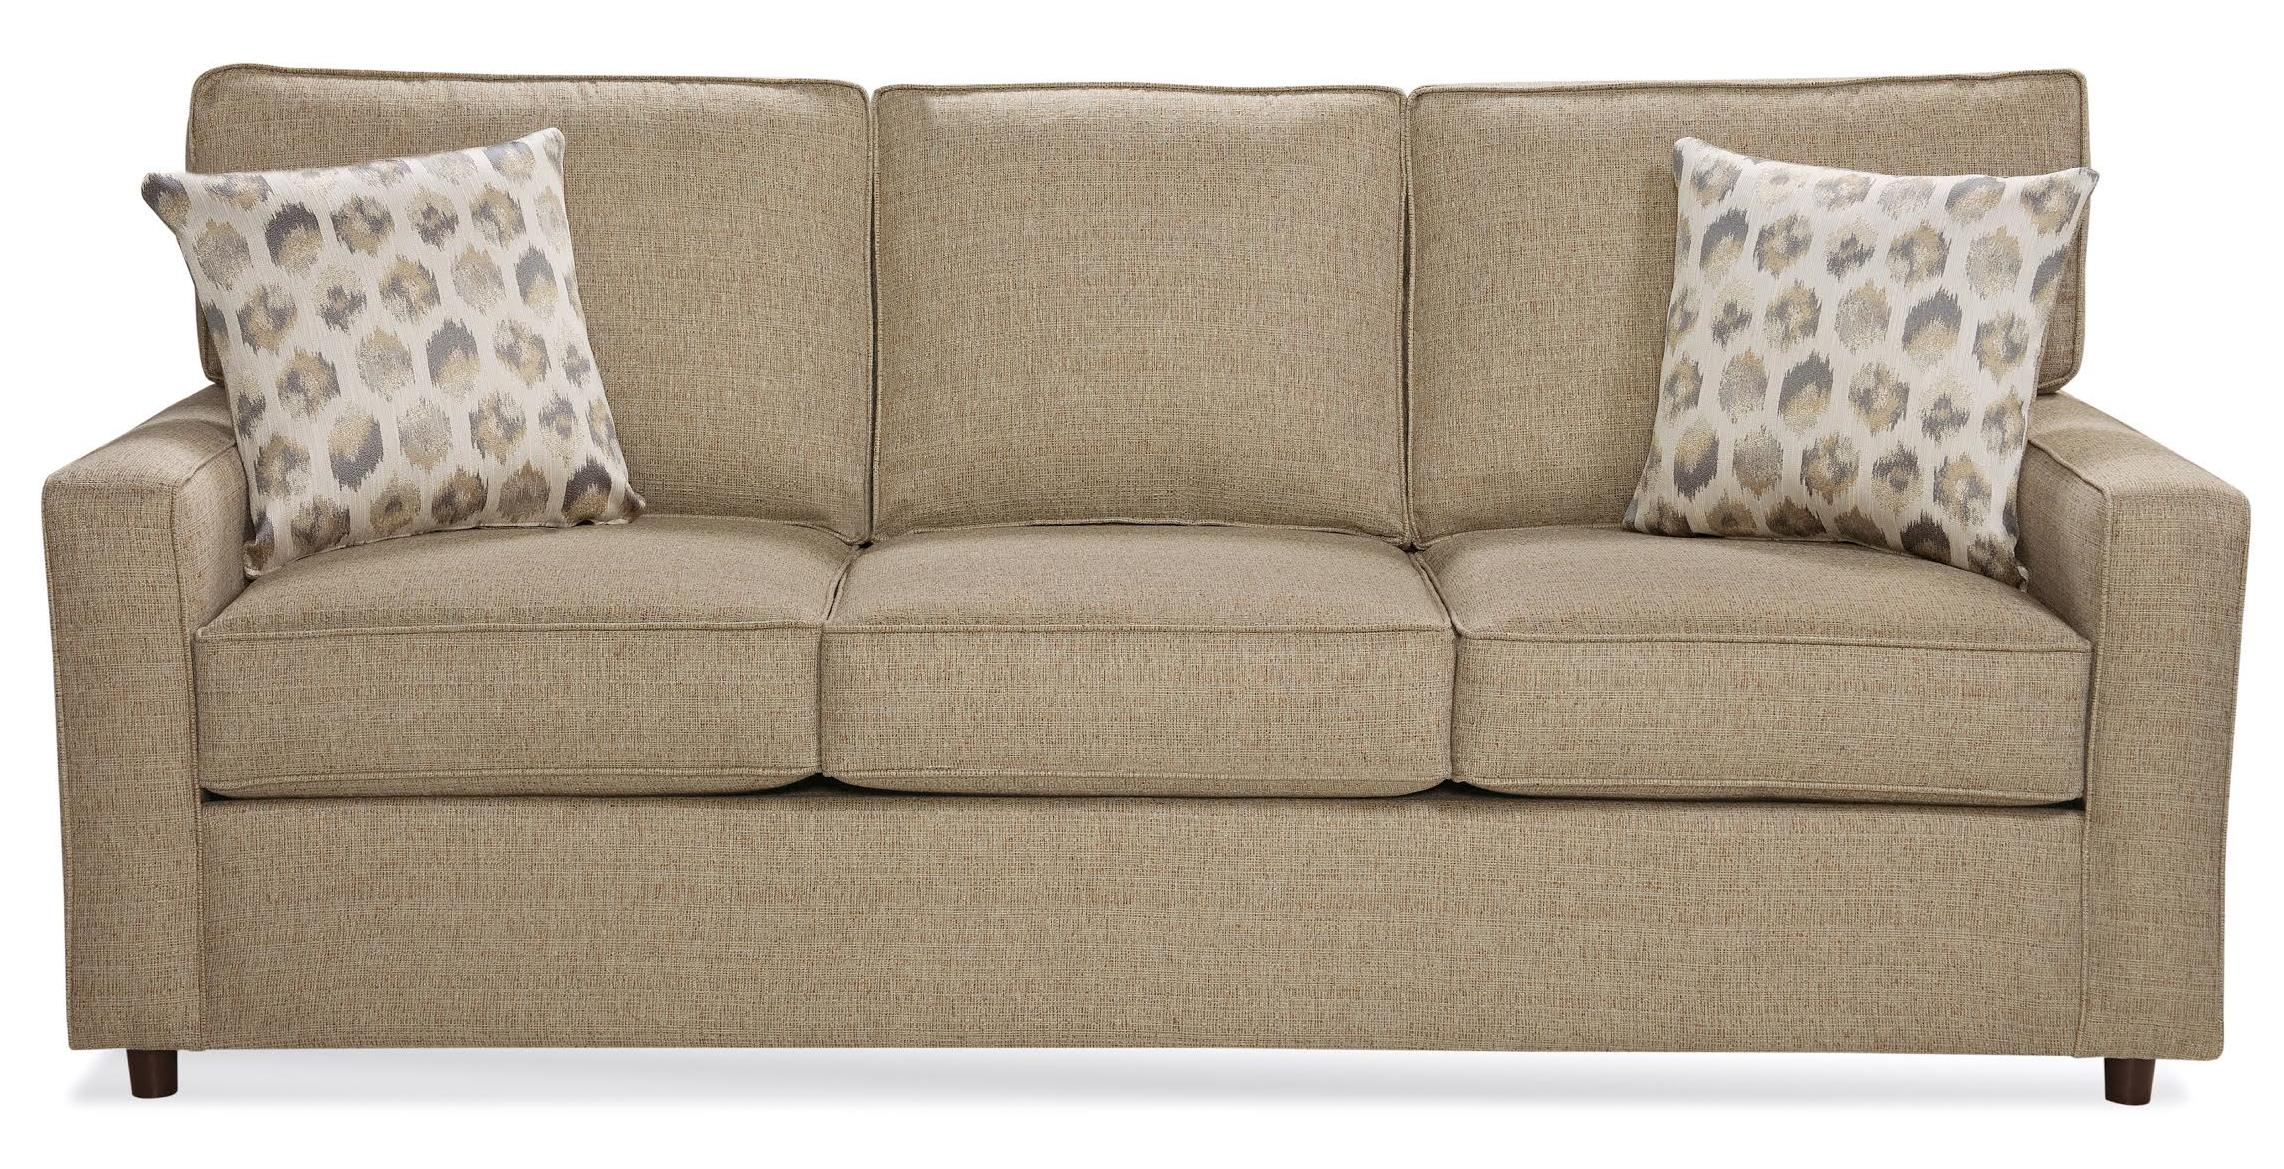 Belfort Essentials Eliot Sofa - Item Number: 9200-30-Brown